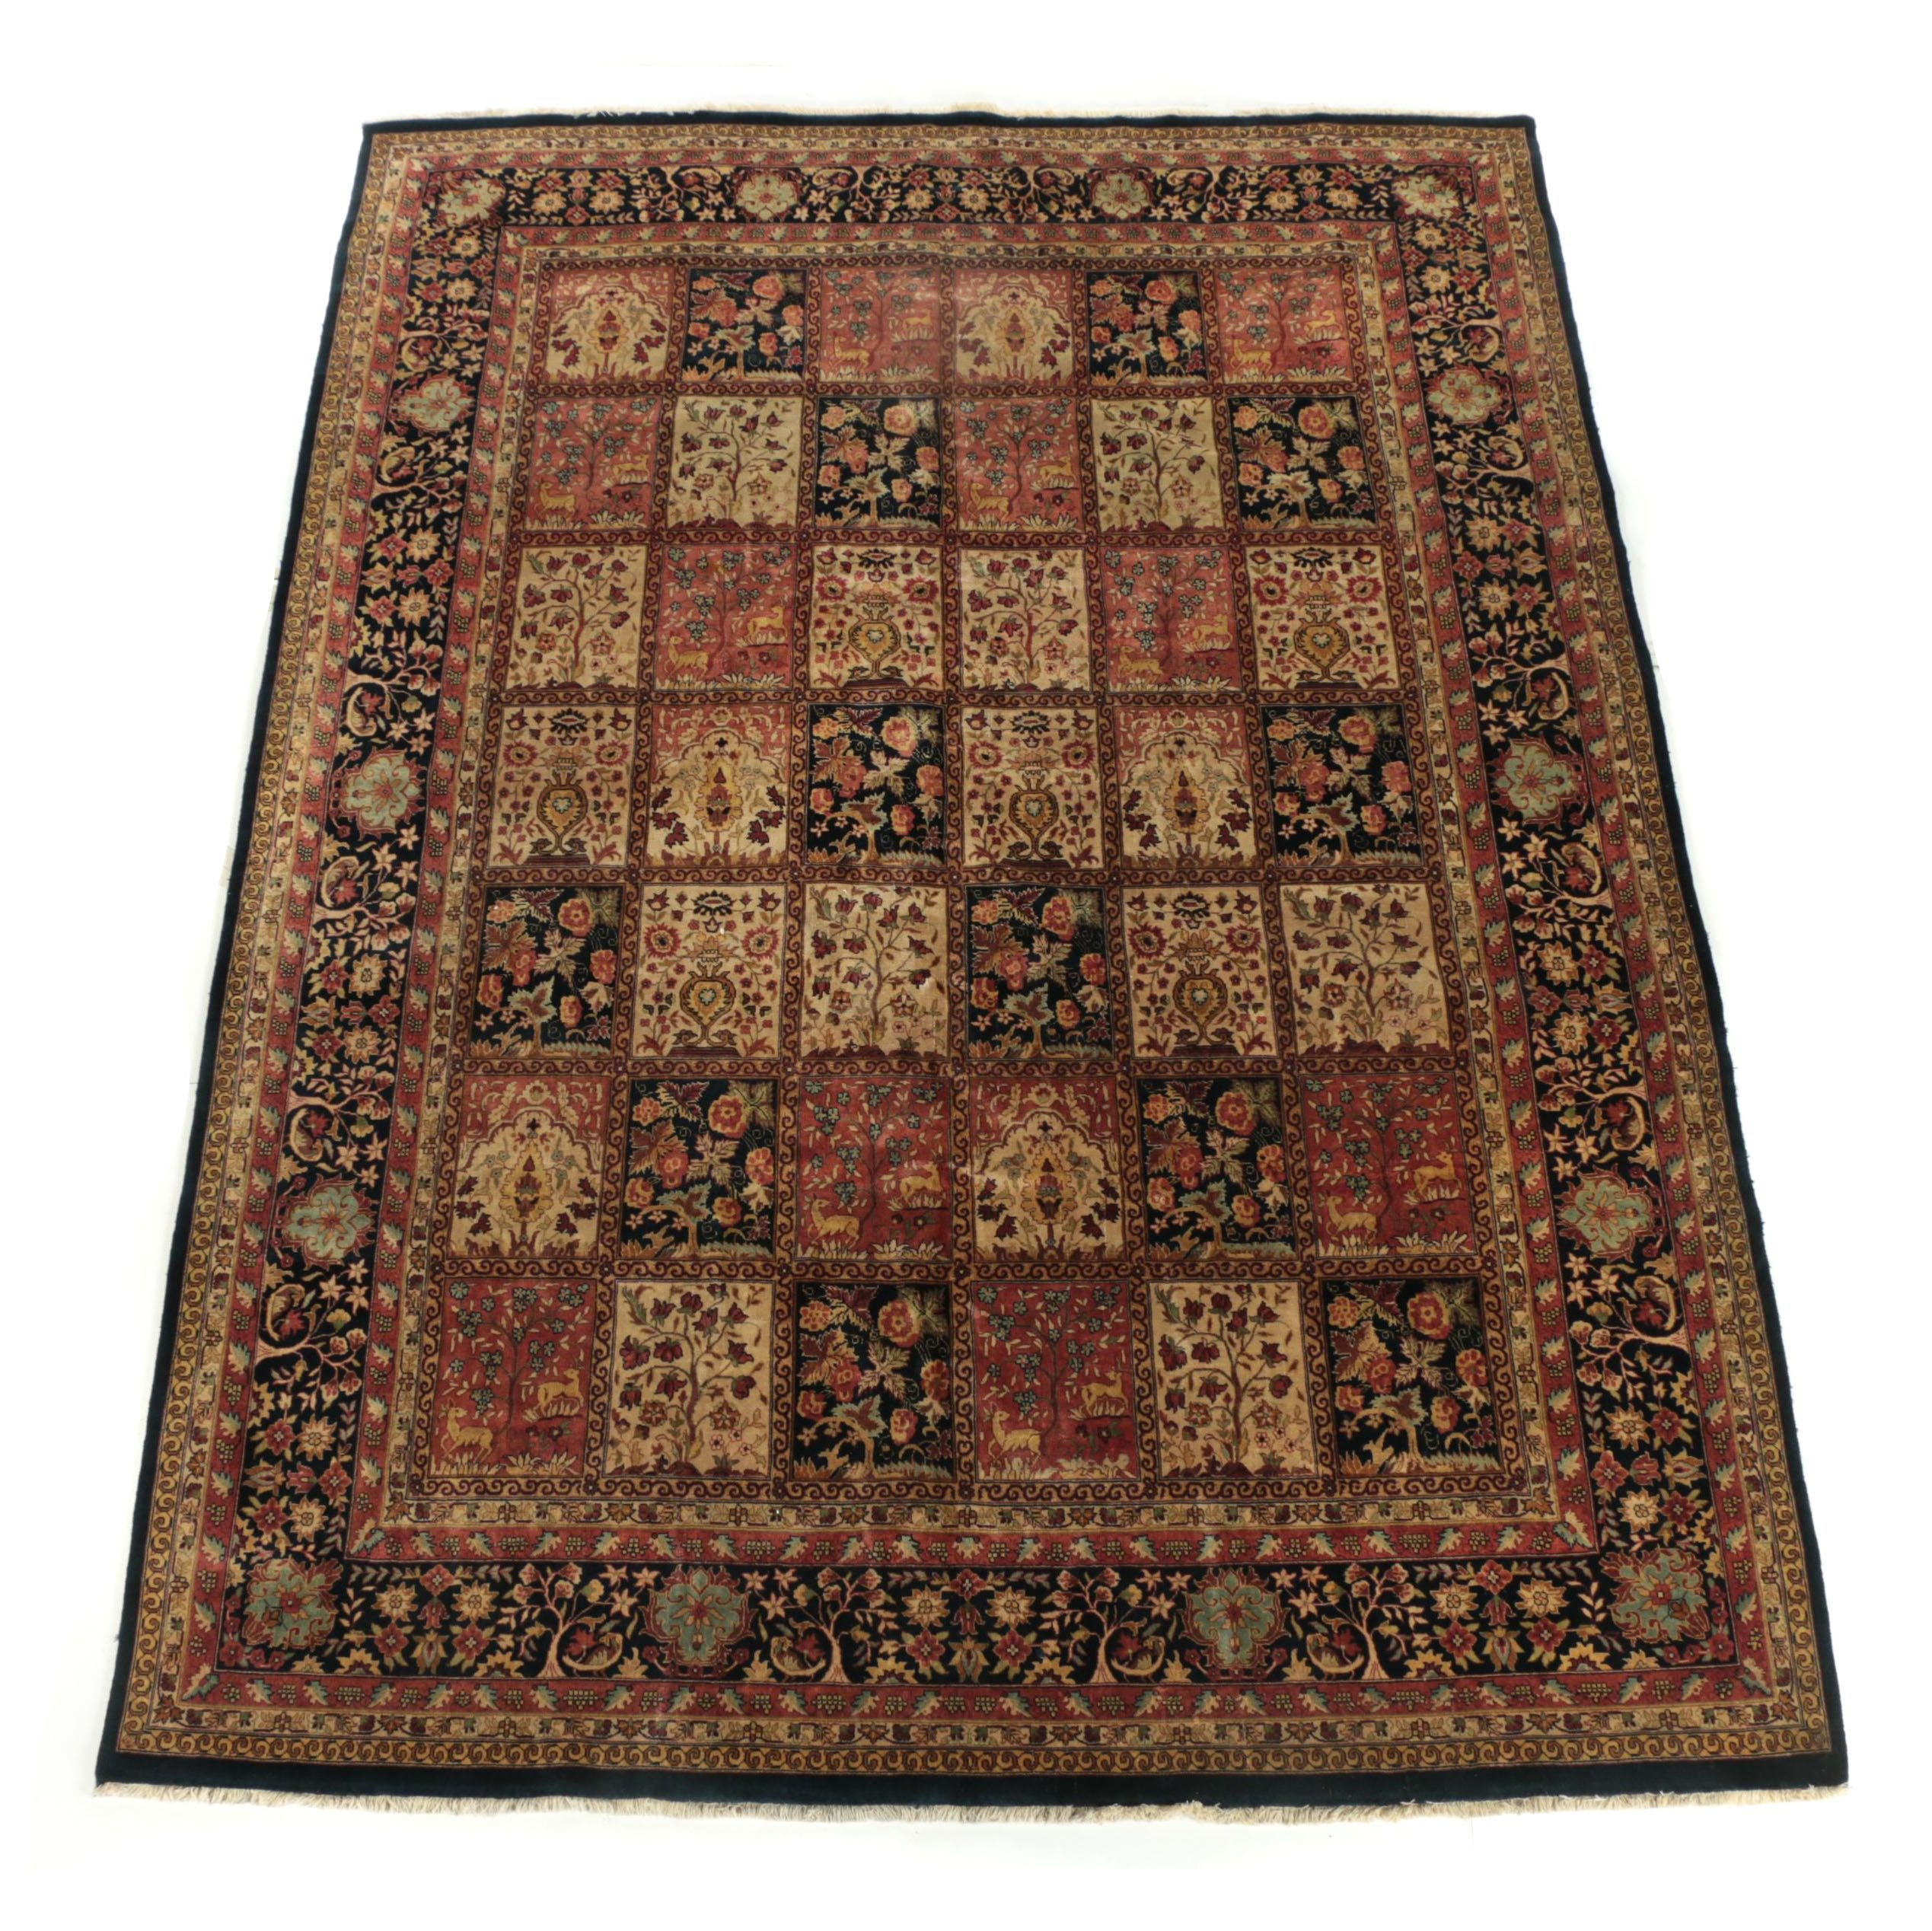 Hand-Knotted Indo-Persian Bakhtiari Wool Room Sized Rug